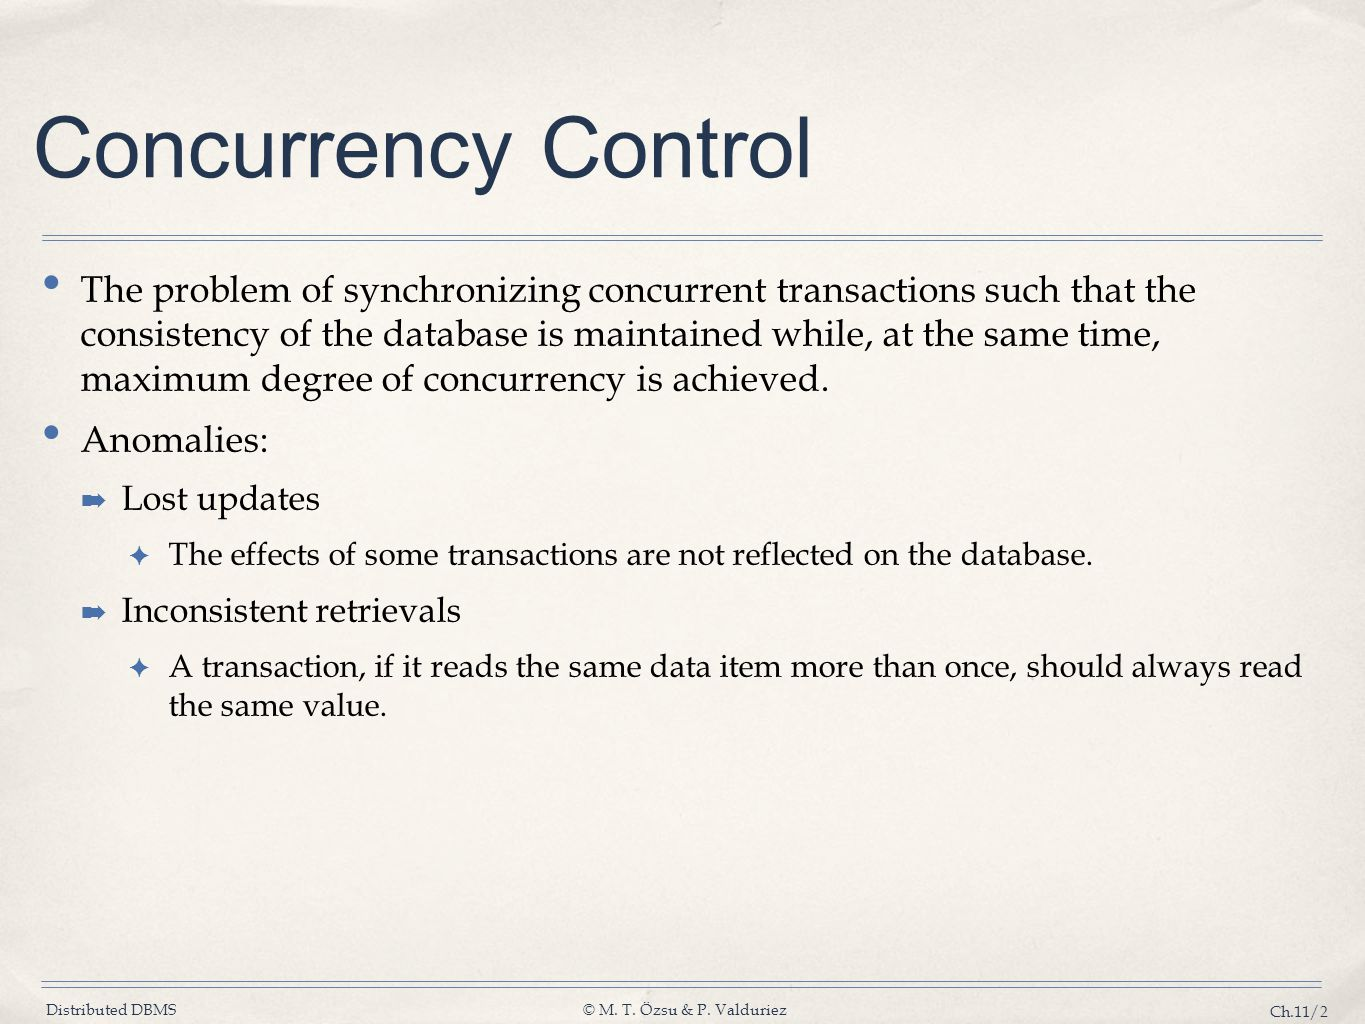 Distributed DBMS© M. T. Özsu & P. Valduriez Ch.11/2 Concurrency Control The problem of synchronizing concurrent transactions such that the consistency